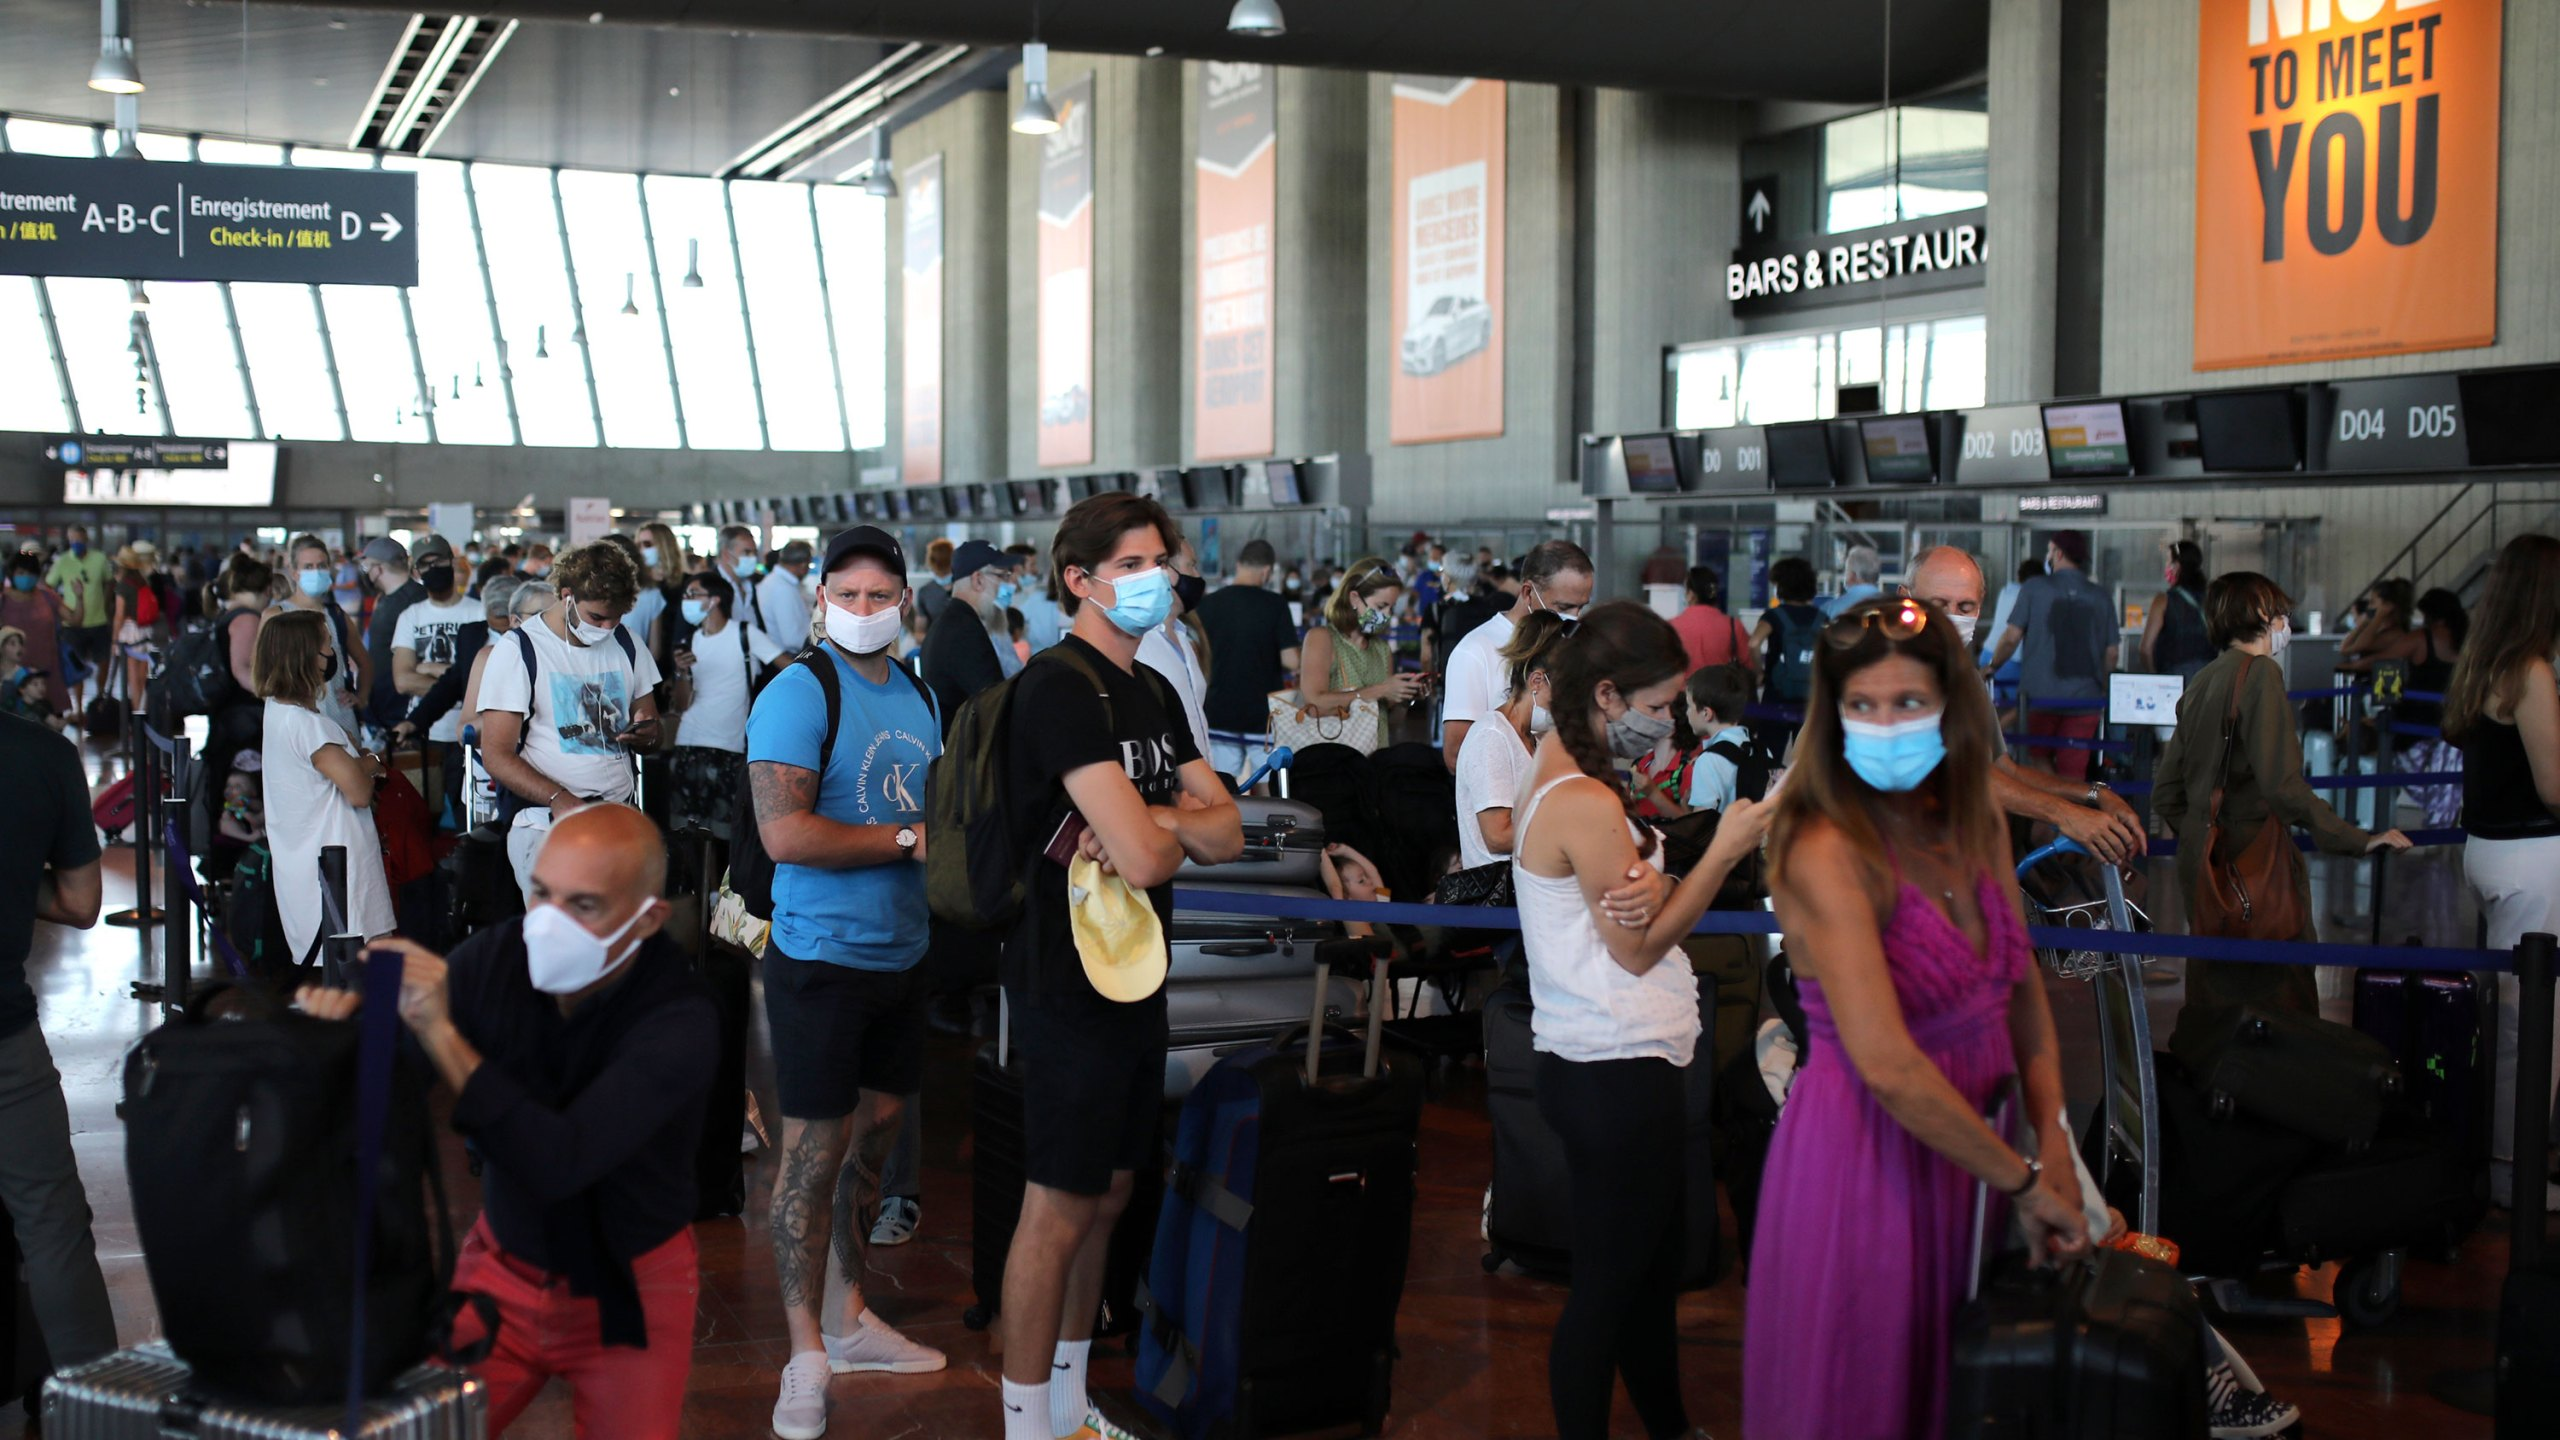 People queue in line to check-in for a British Airways flight to Heathrow airport, Friday Aug.14, 2020 at Nice airport, southern France. (AP Photo/Daniel Cole)